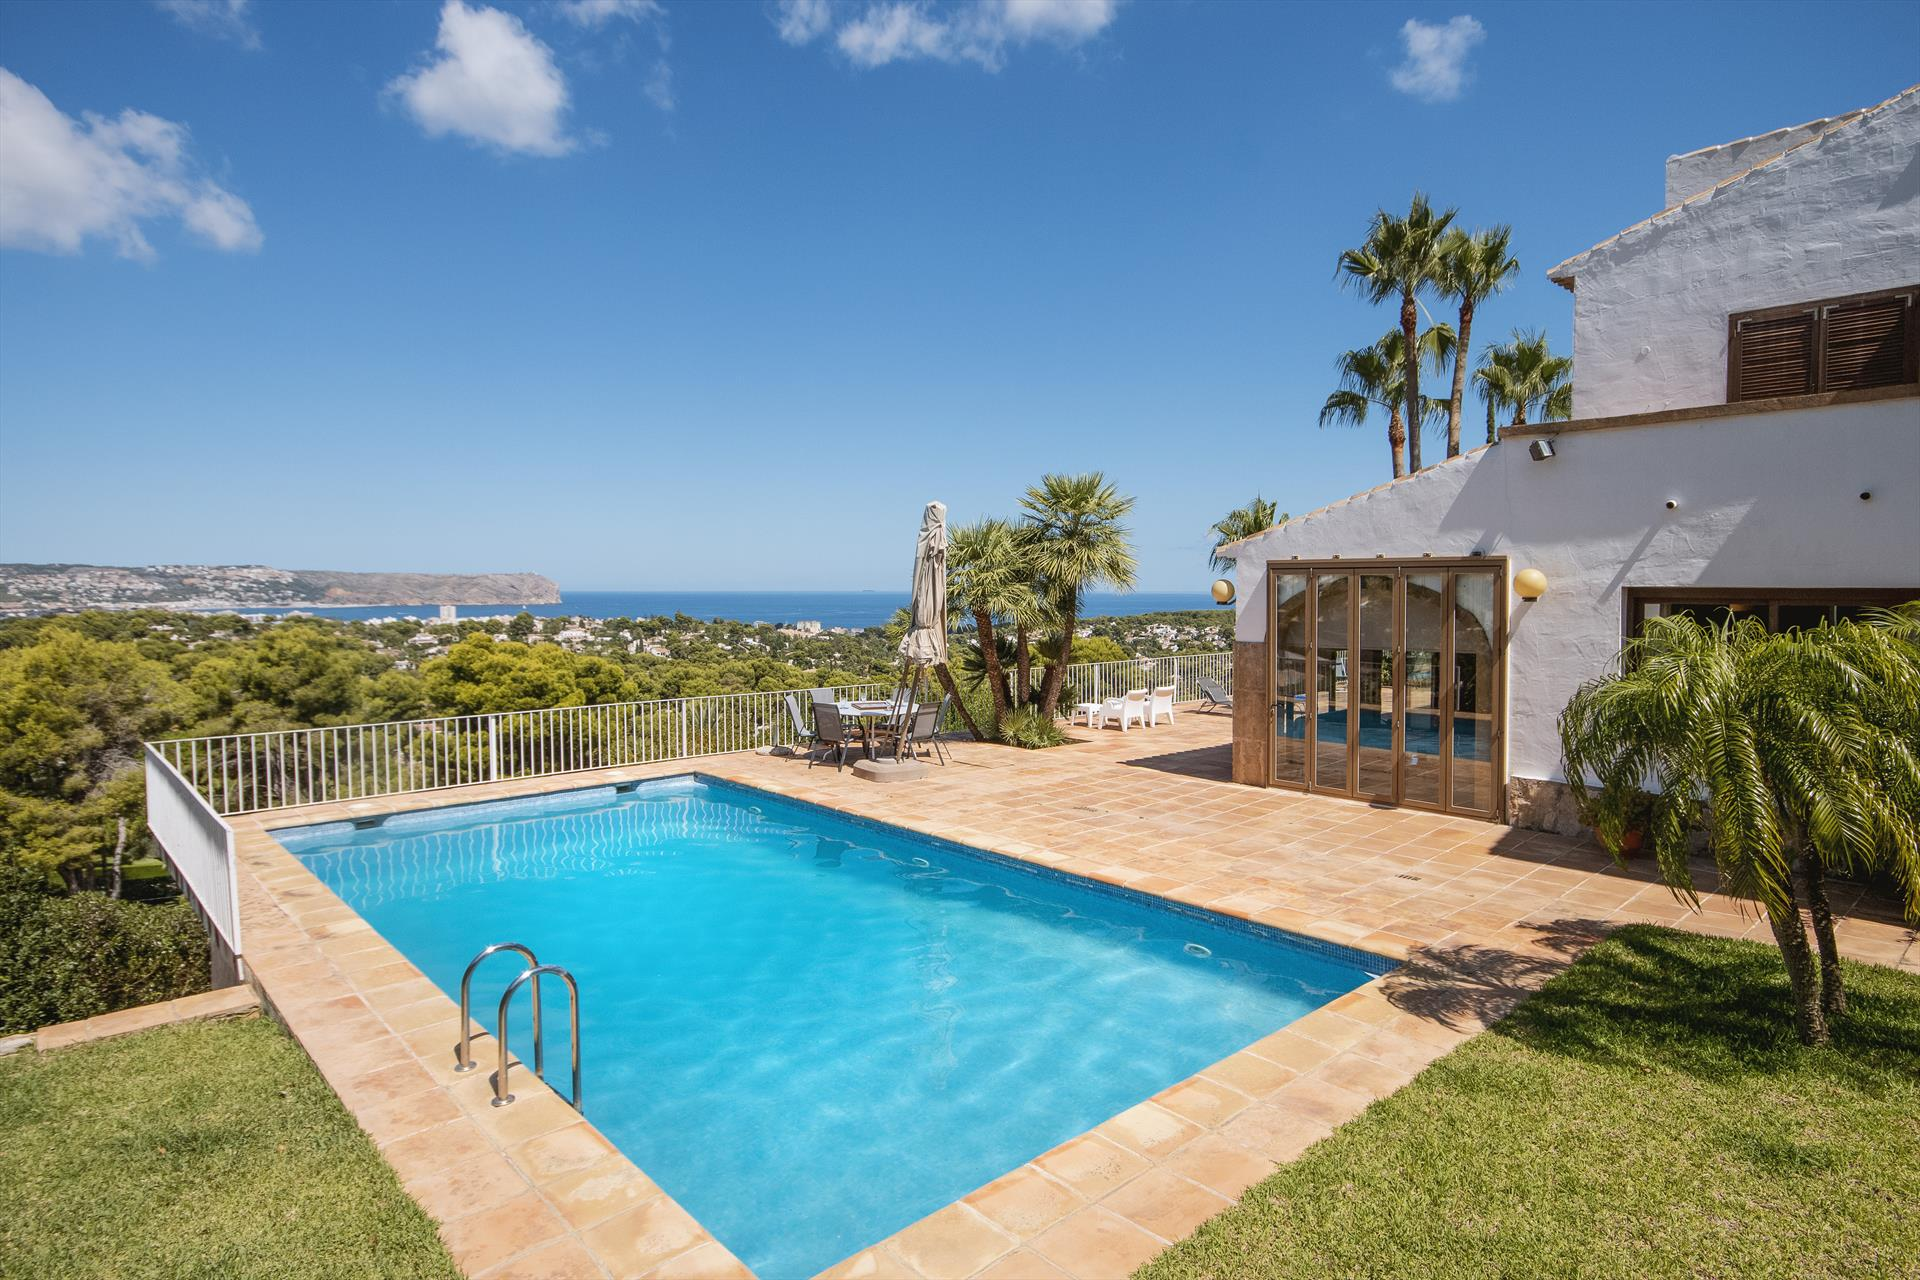 Bell Lloc 6 pax, Wonderful and comfortable villa in Javea, on the Costa Blanca, Spain  with private pool for 6 persons.....